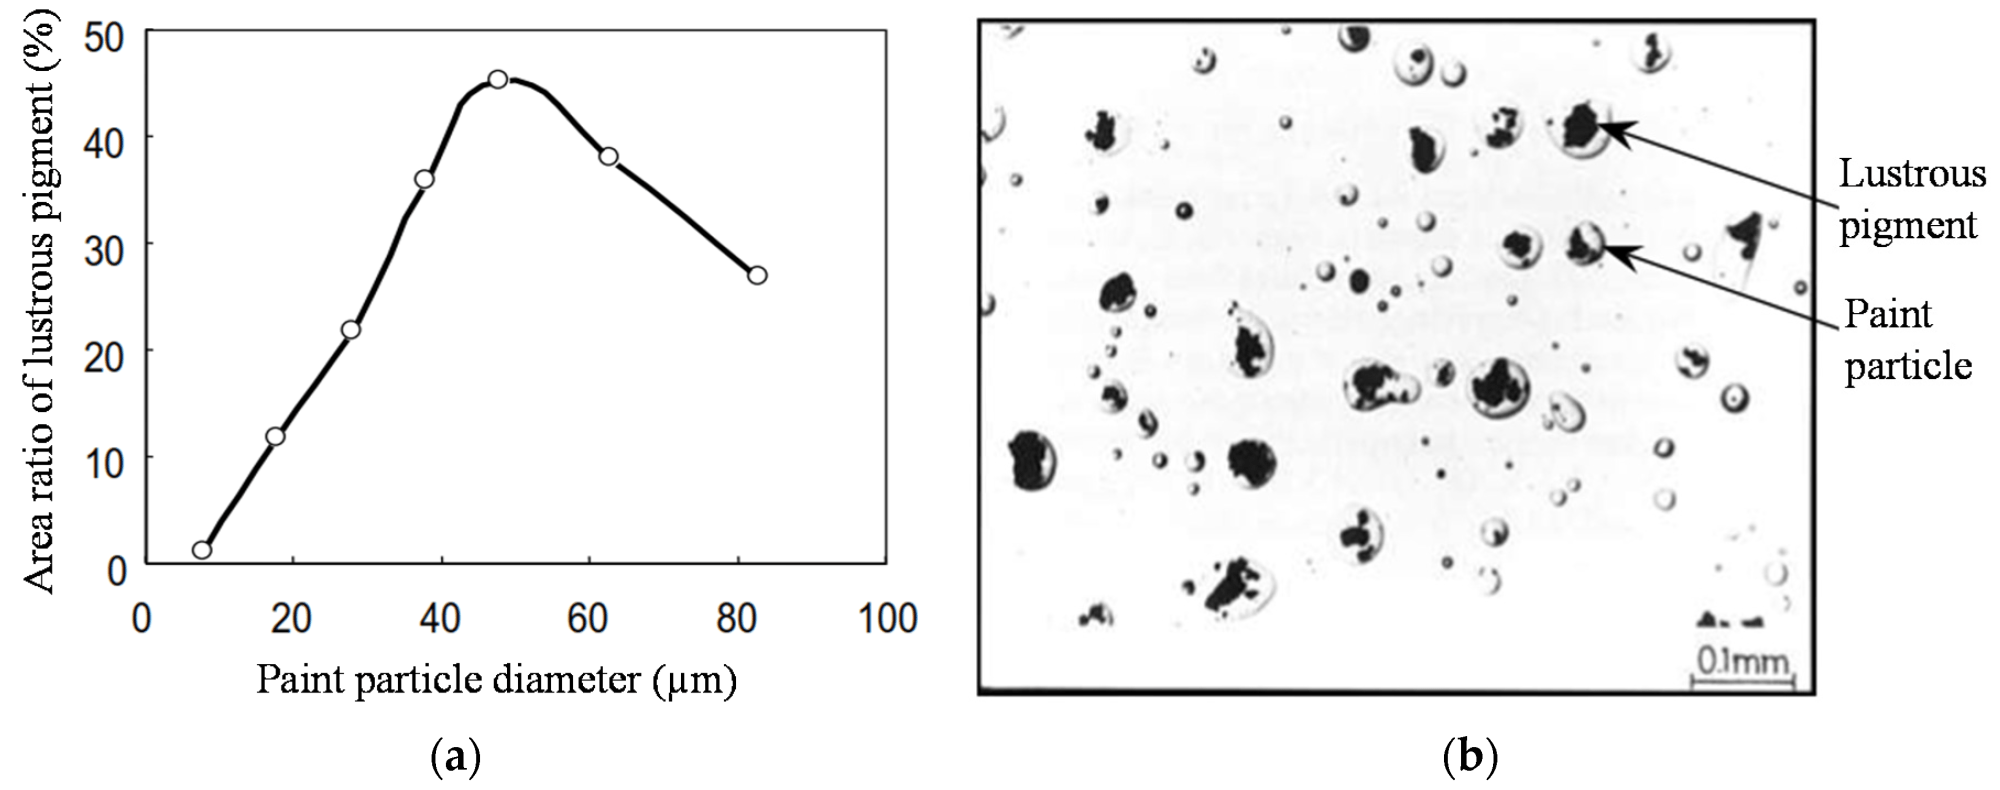 hight resolution of coatings 06 00024 g009